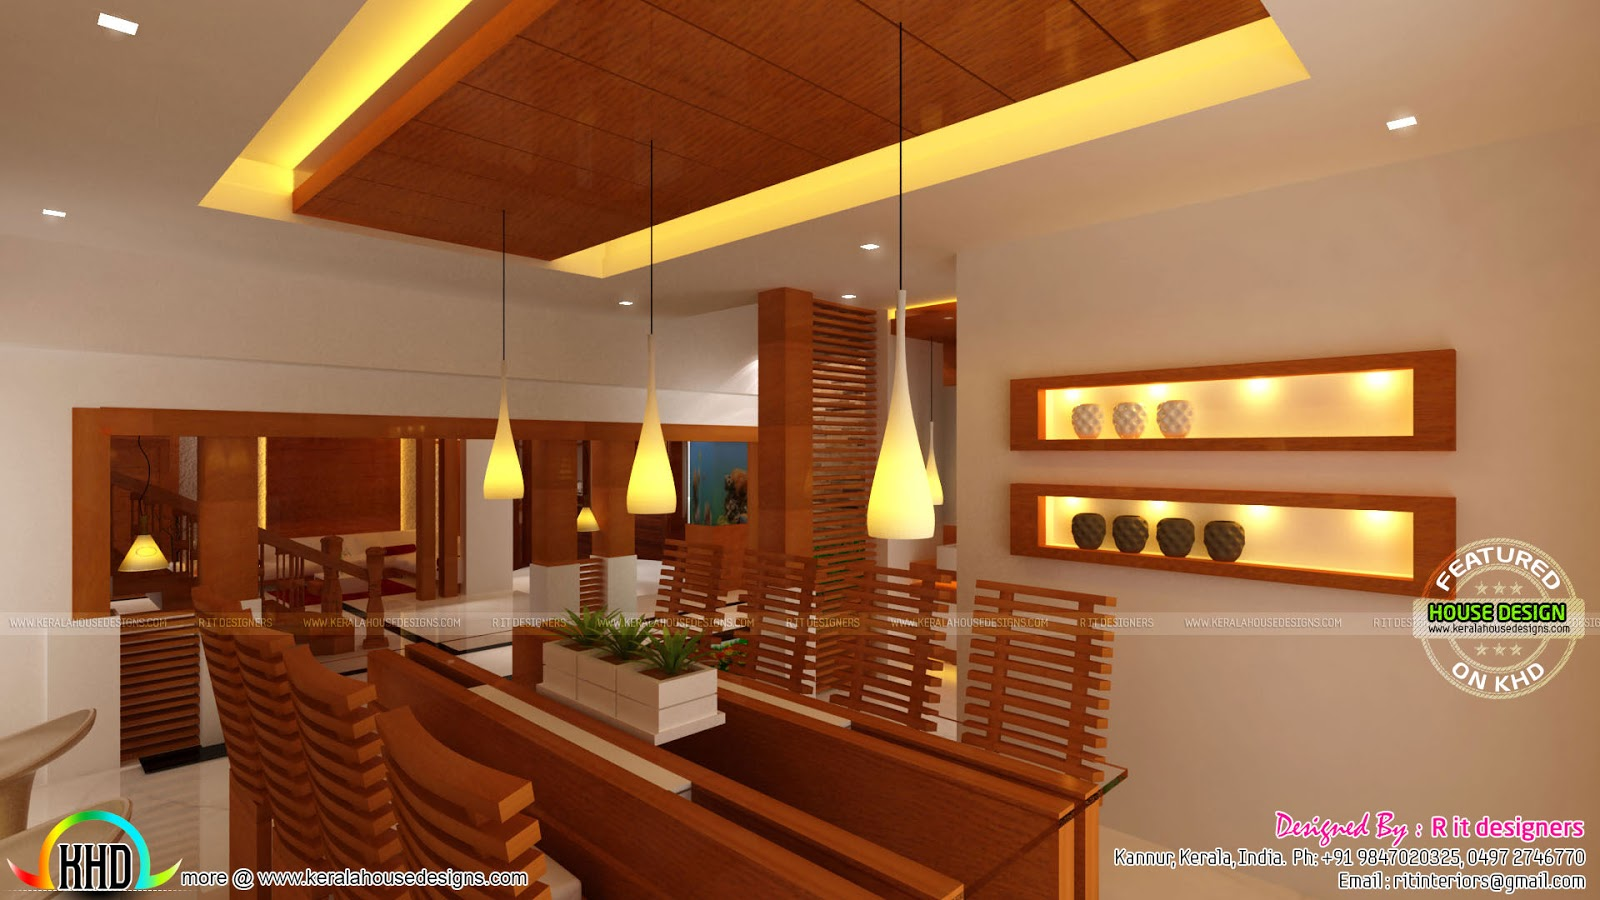 Wooden finish interior designs kerala home design and for House plans with interior photos